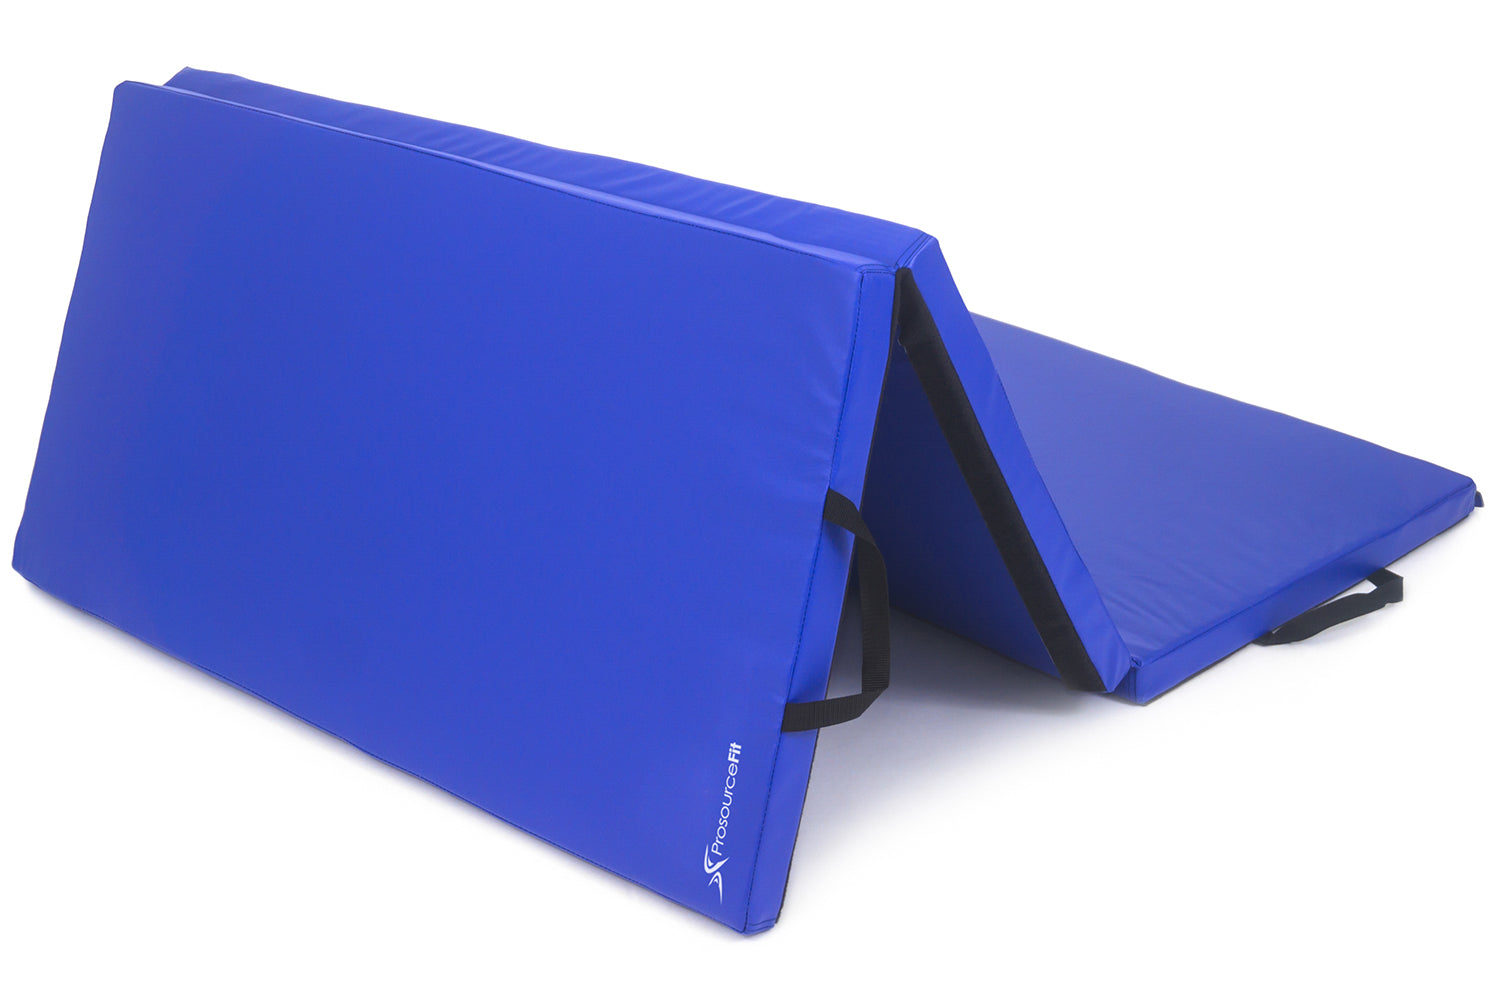 Blue Tri-Fold Folding Exercise Mat 6x4x2